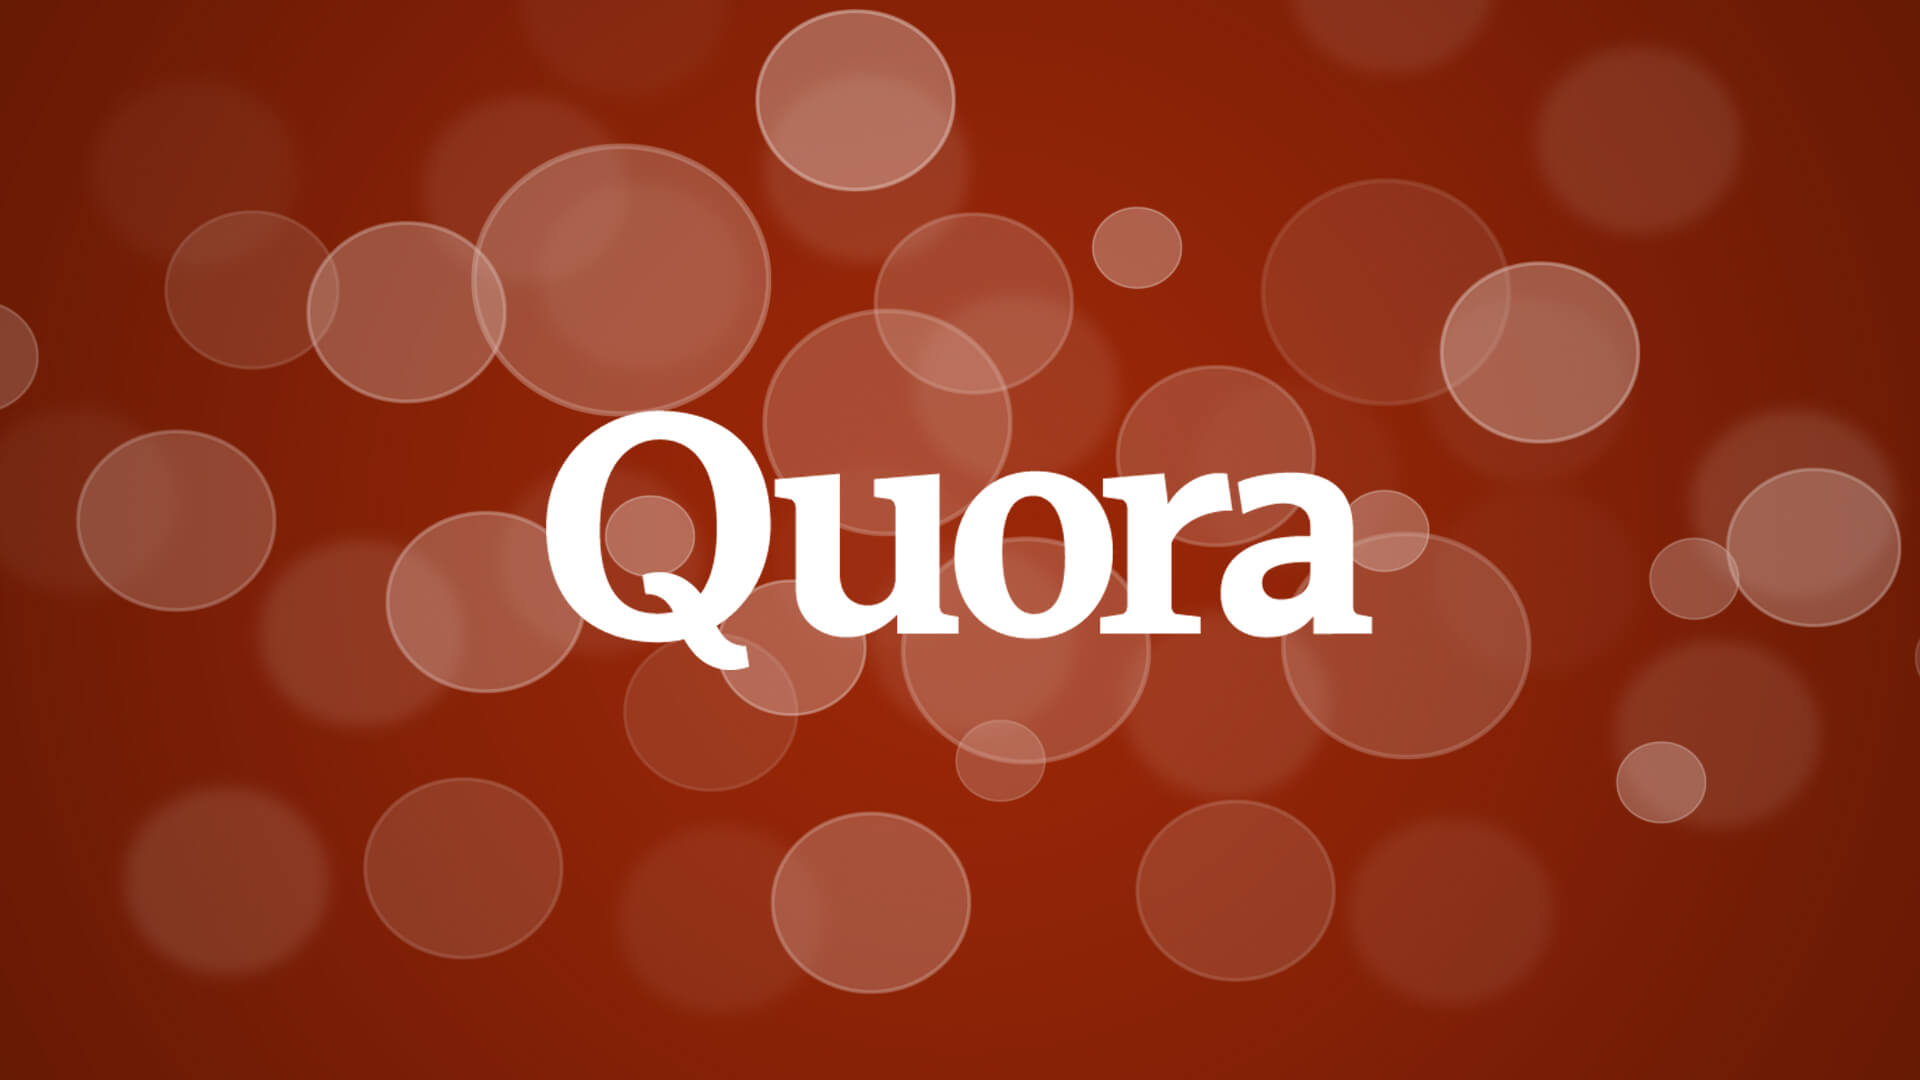 Promote your business website with 20 high quality quora  backlinks